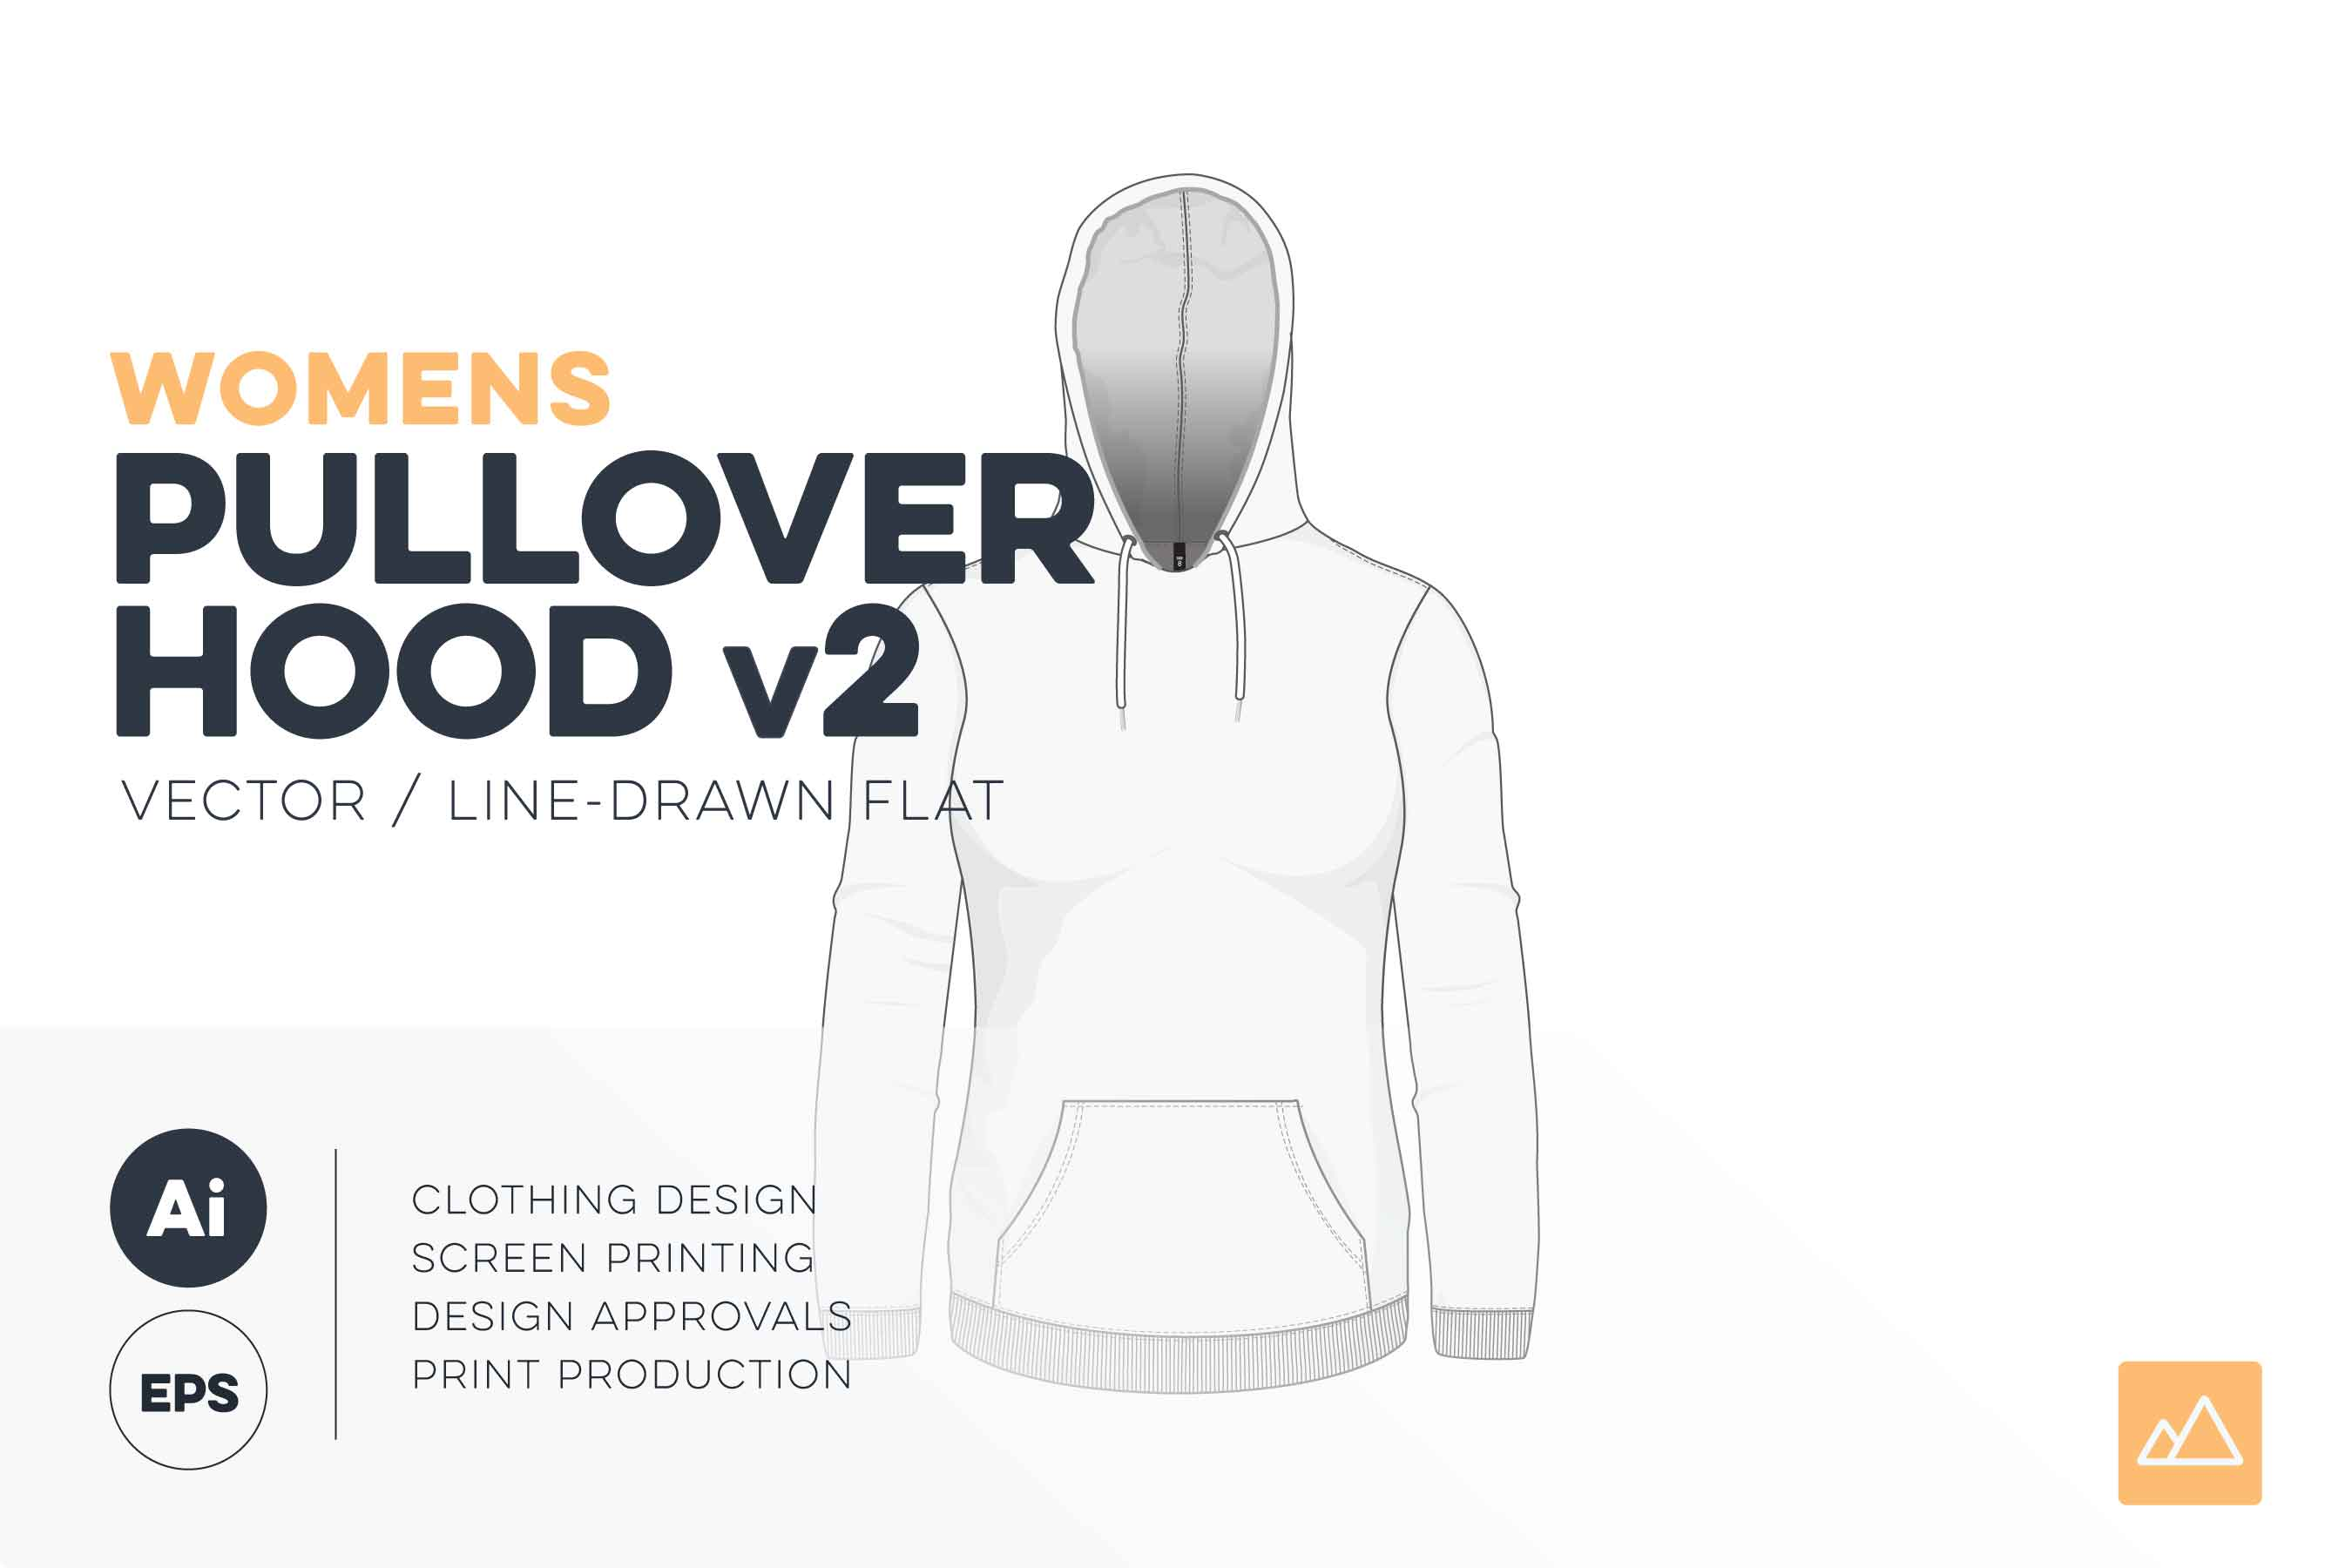 Womens pullover hoodie template version 2 vector pack HERO